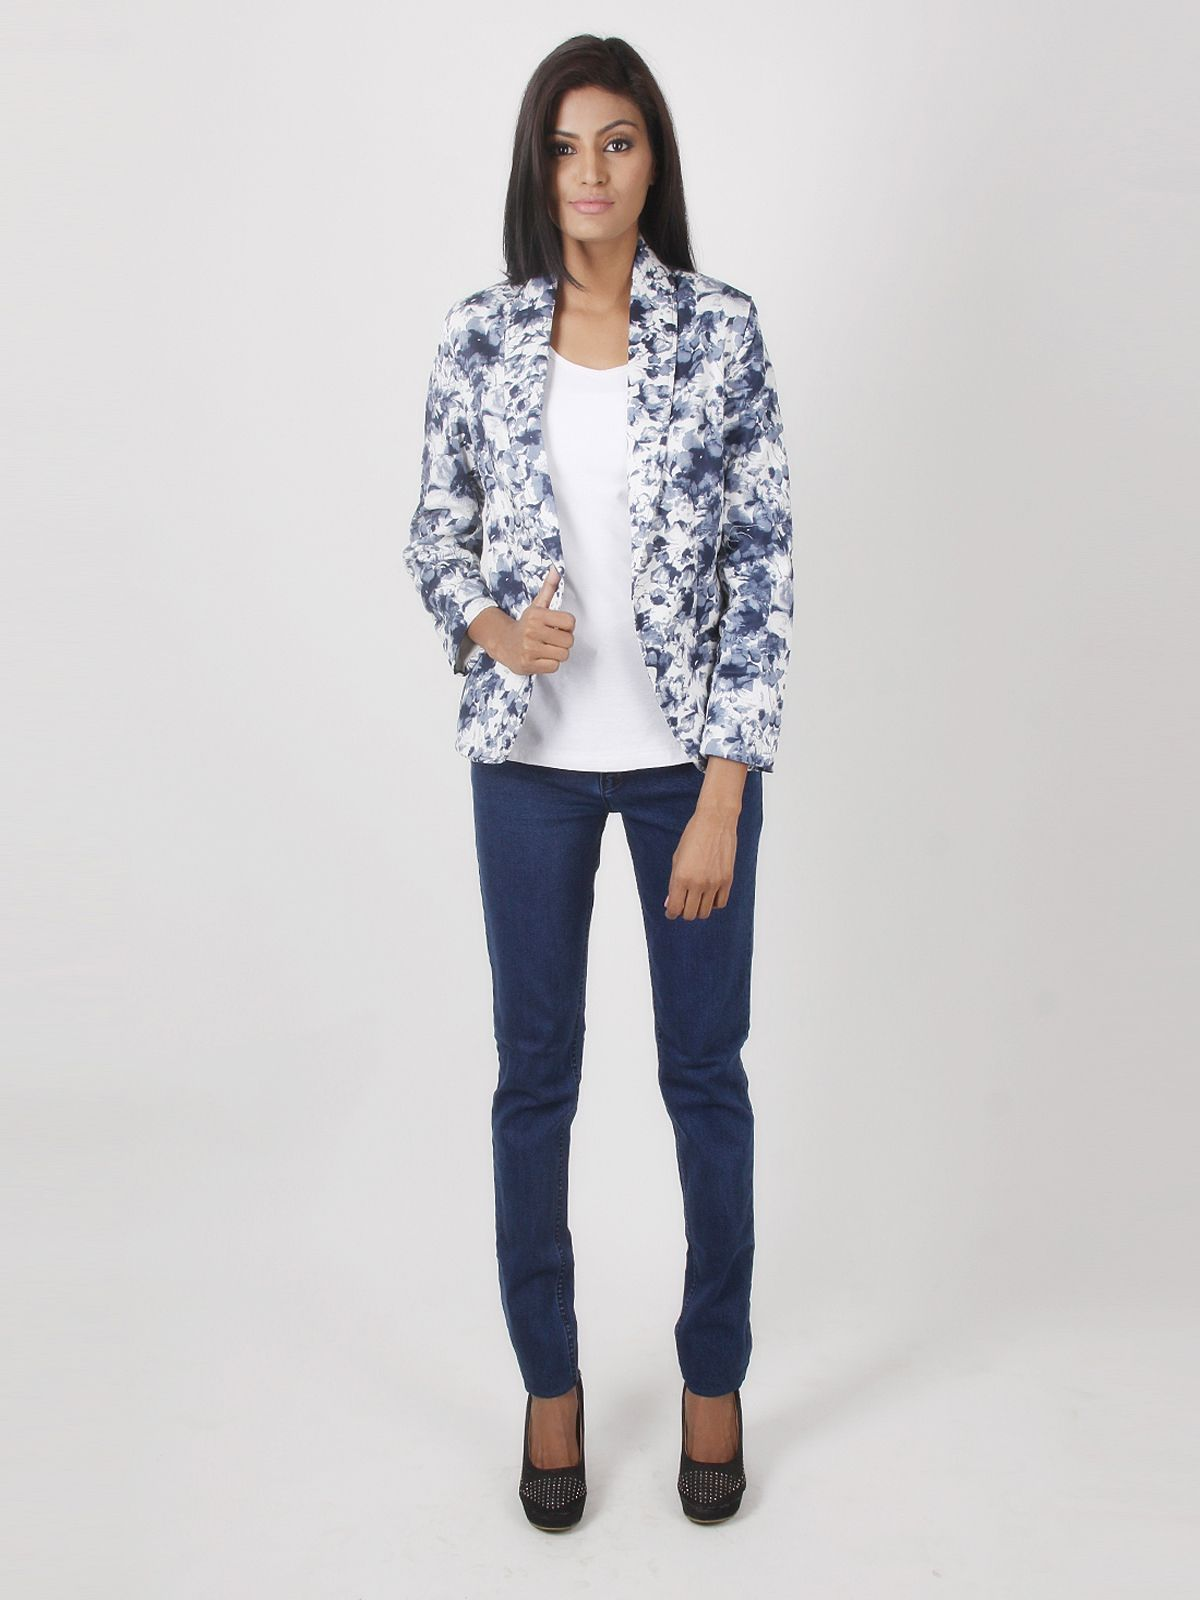 casual jackets for women - Google Search | pantsuit ...